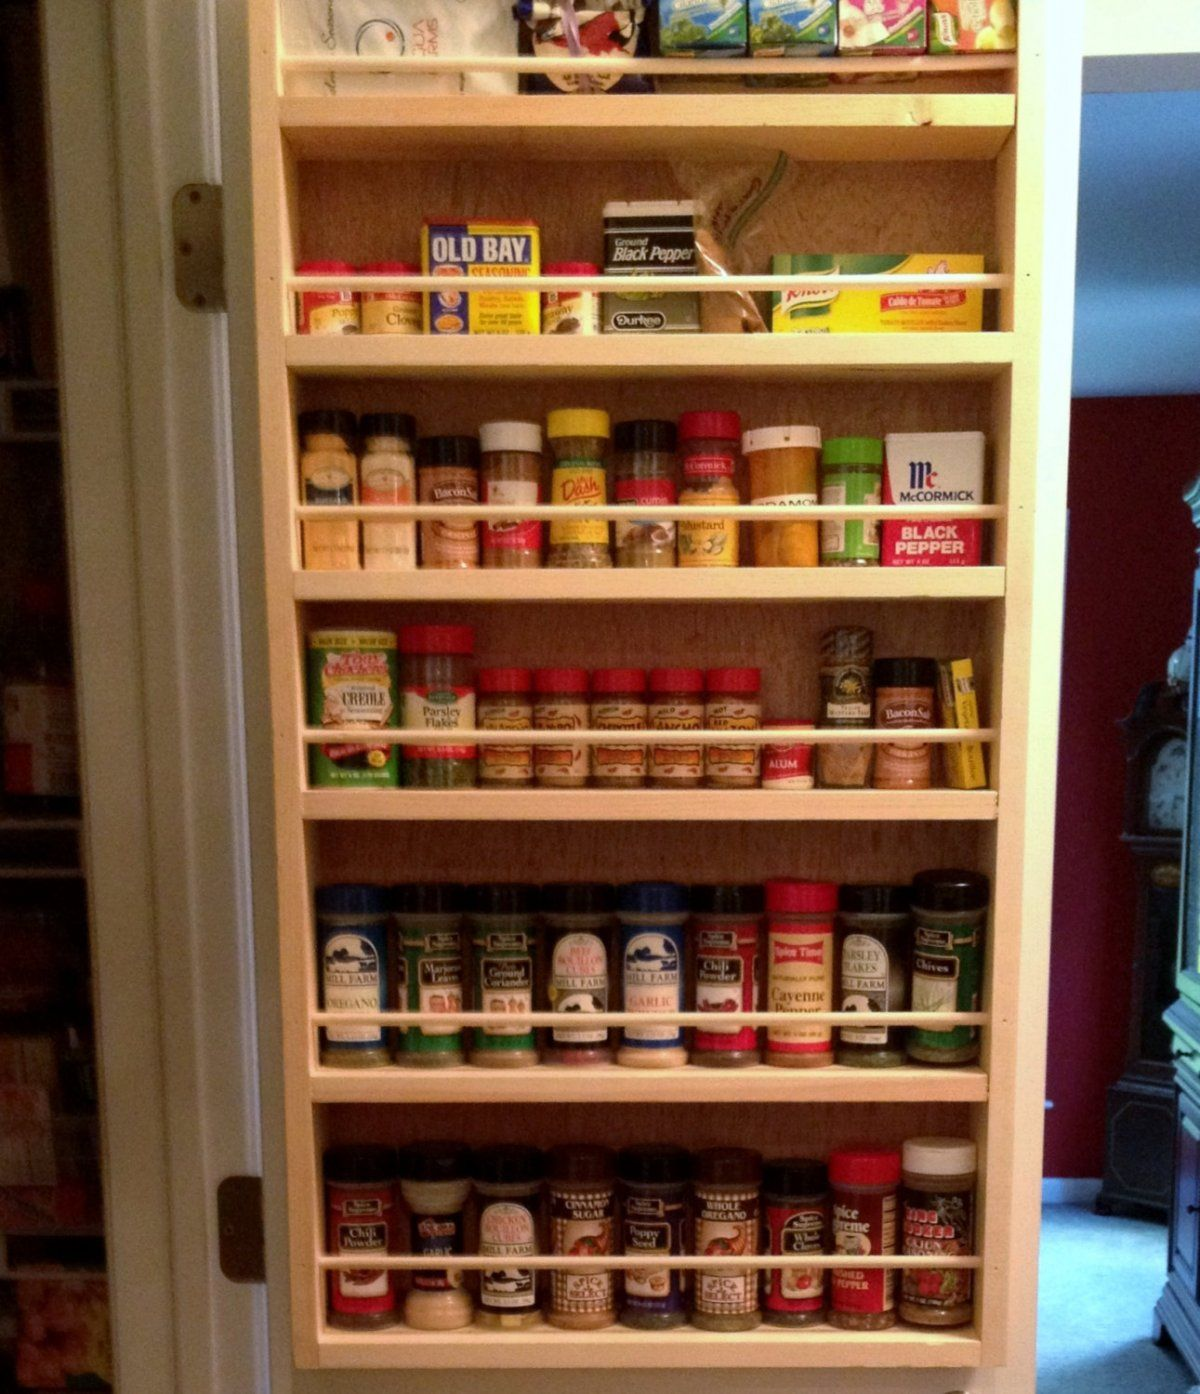 Spice Rack On Inside Of Pantry Doors Ideas For The House Pinterest Pantry